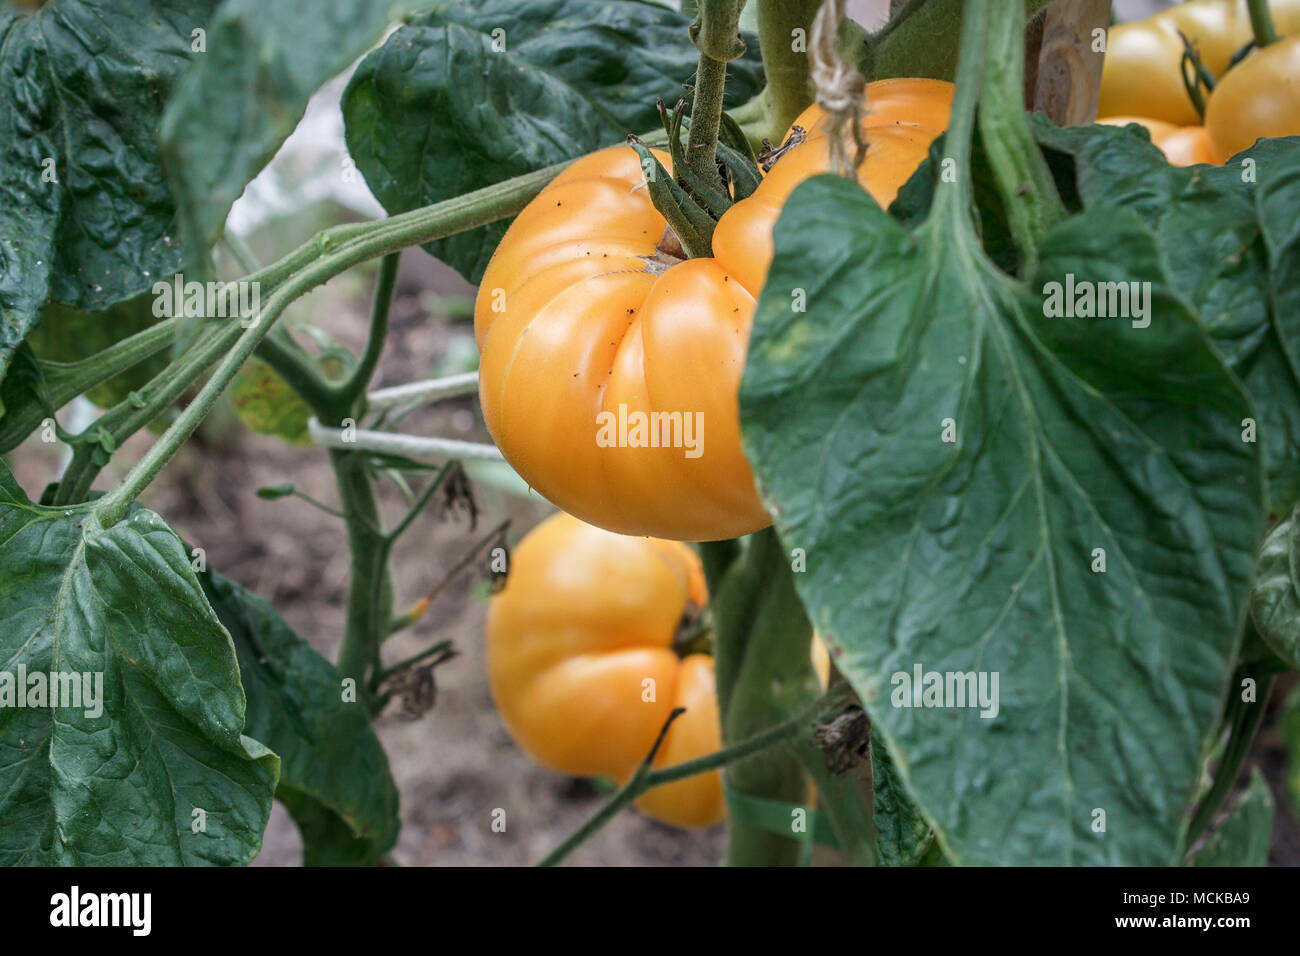 A cluster of ripe Yellow Brandywine tomatoes hang from a plant in a backyard food garden in early September. - Stock Image